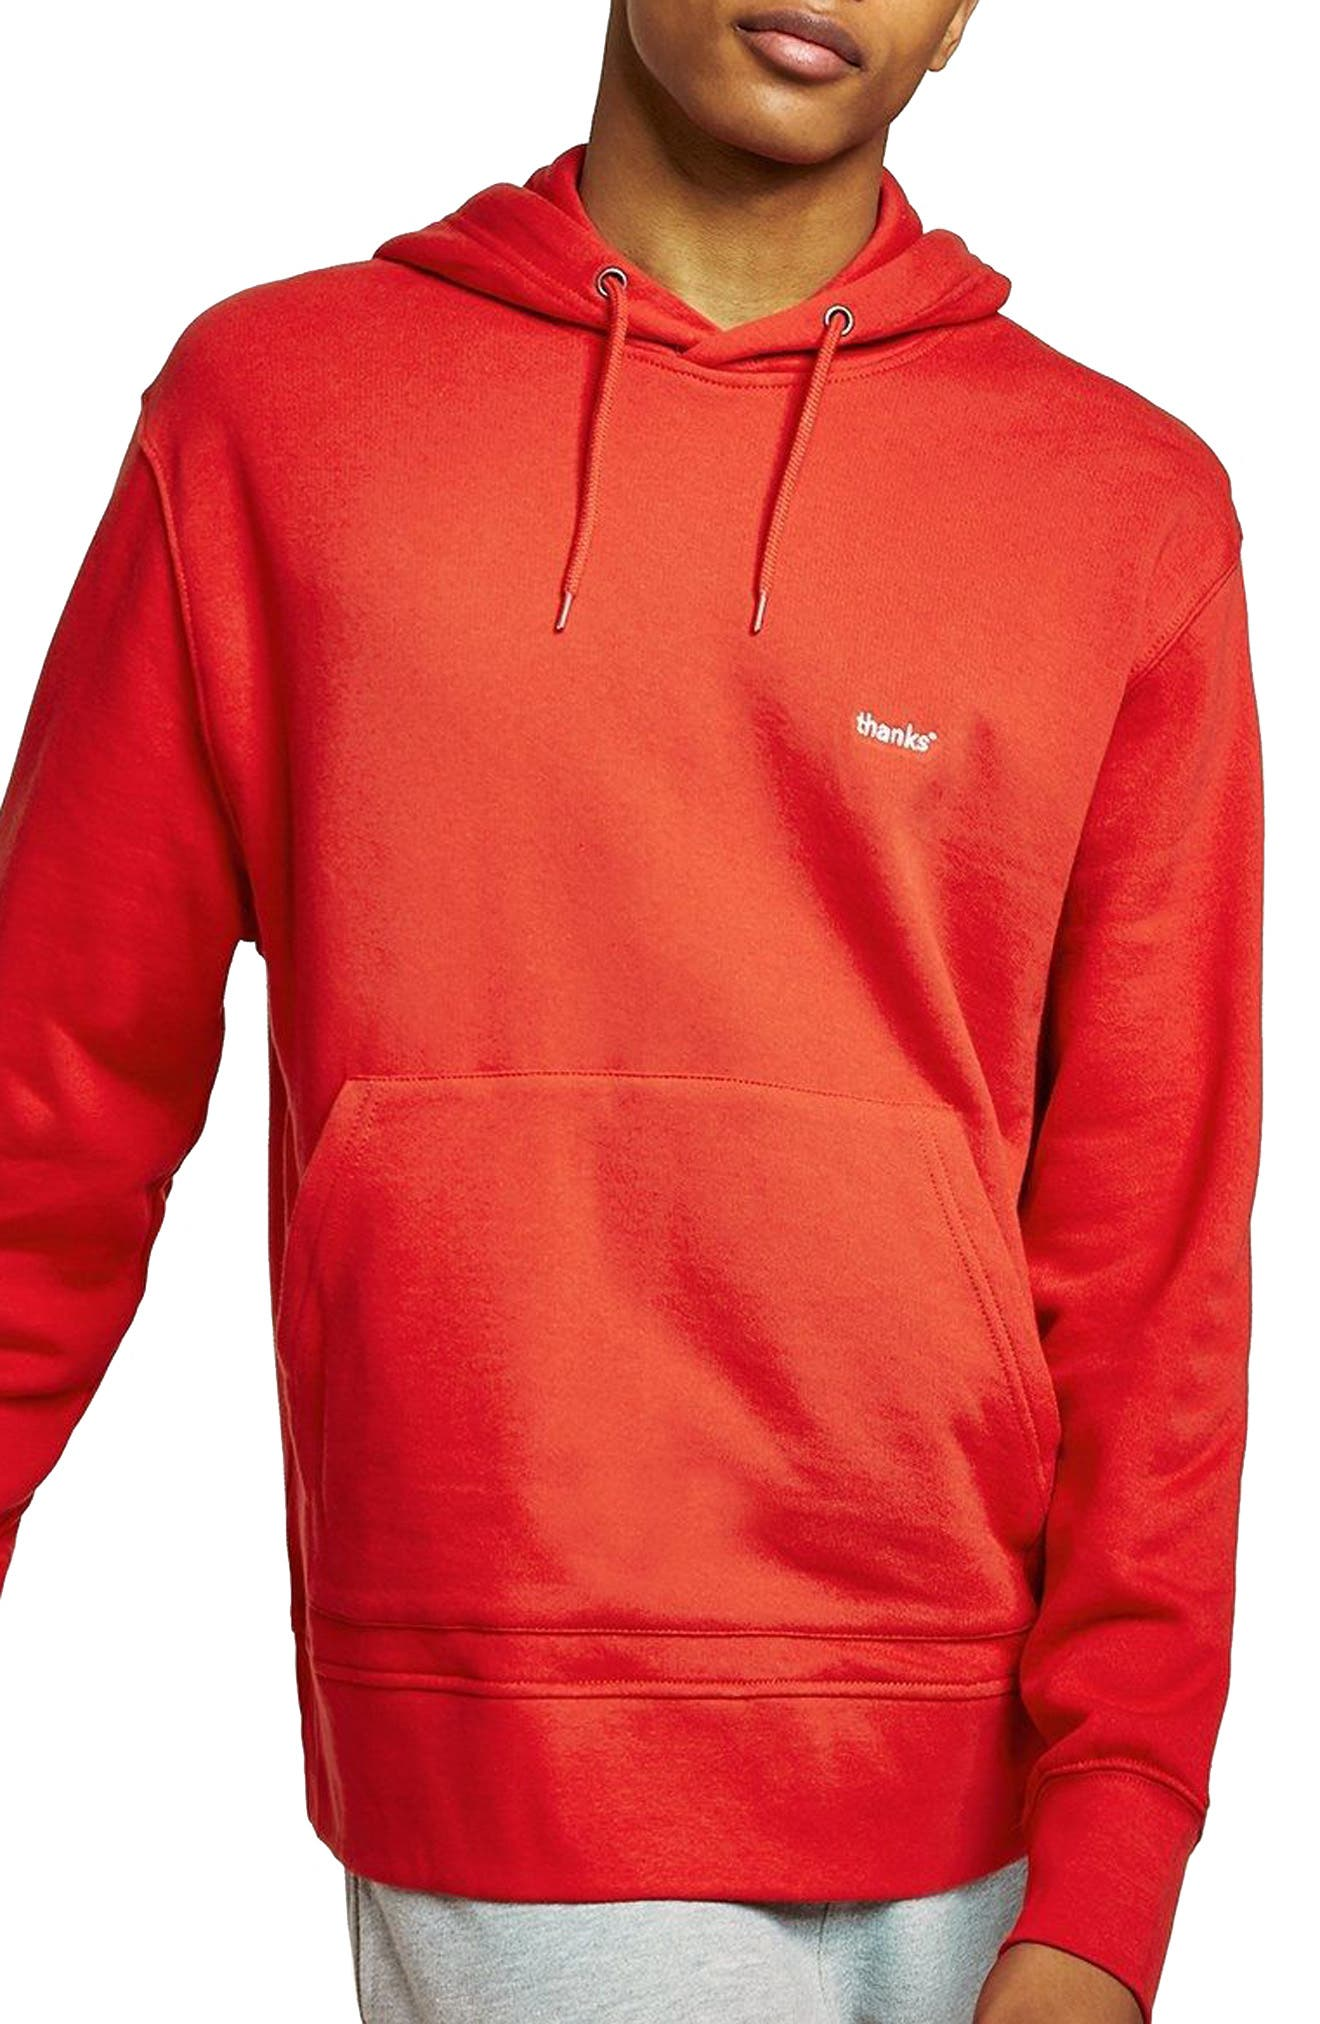 Classic Fit Tristan Thanks Embroidered Hoodie,                         Main,                         color, Red Multi